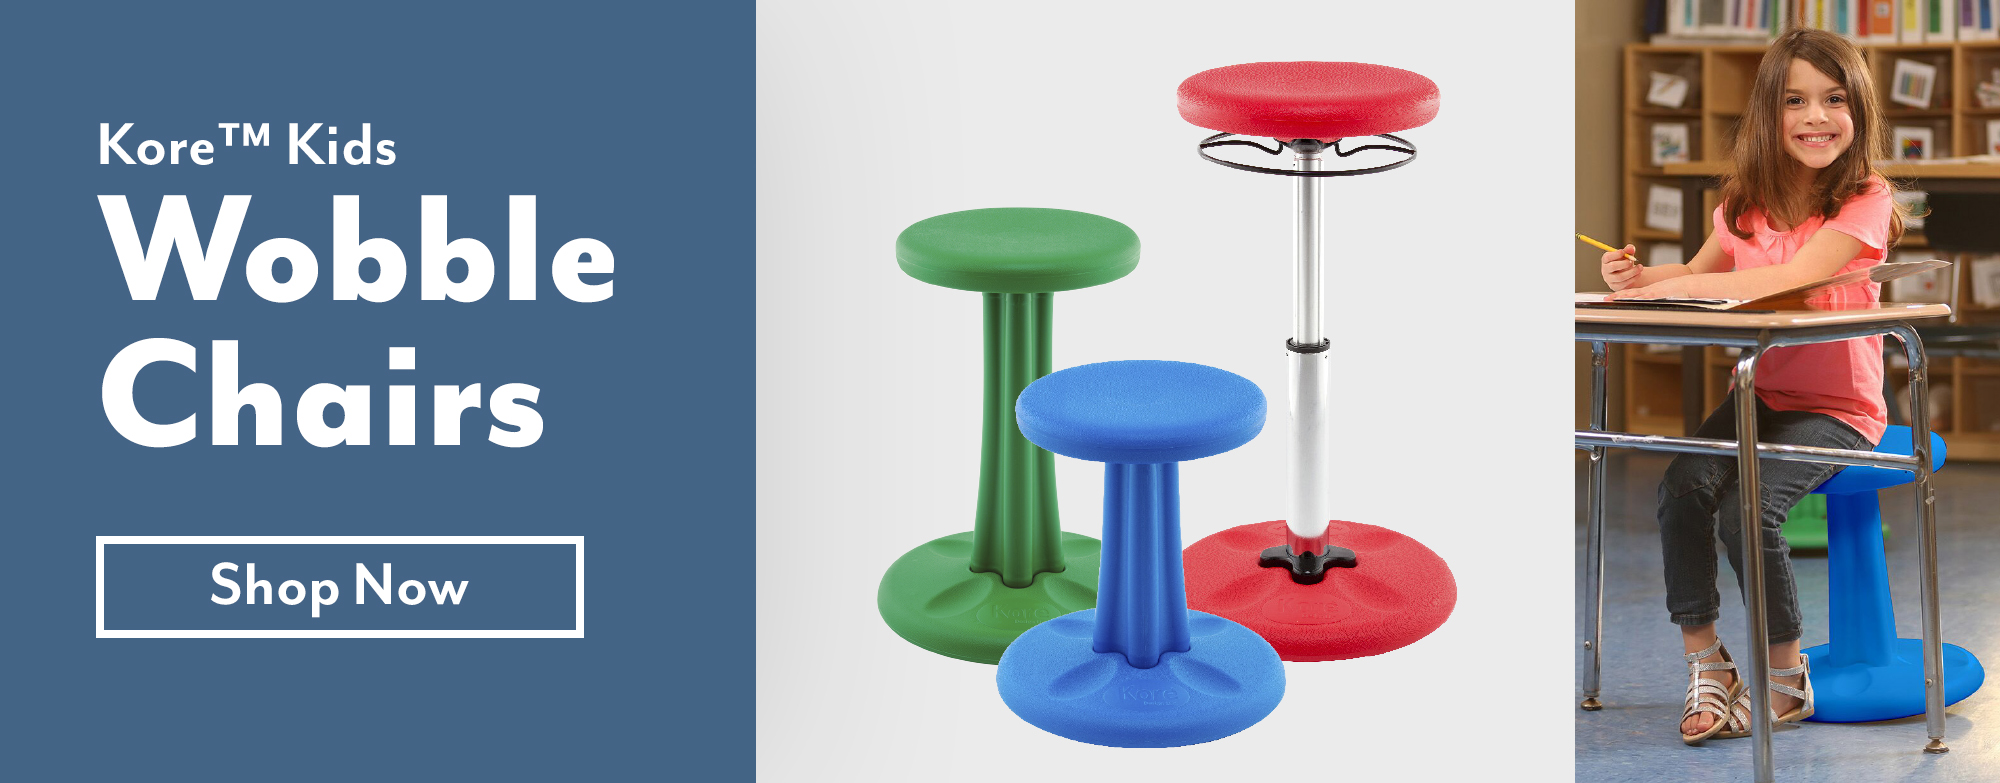 Kore™ Kids Wobble Chair.